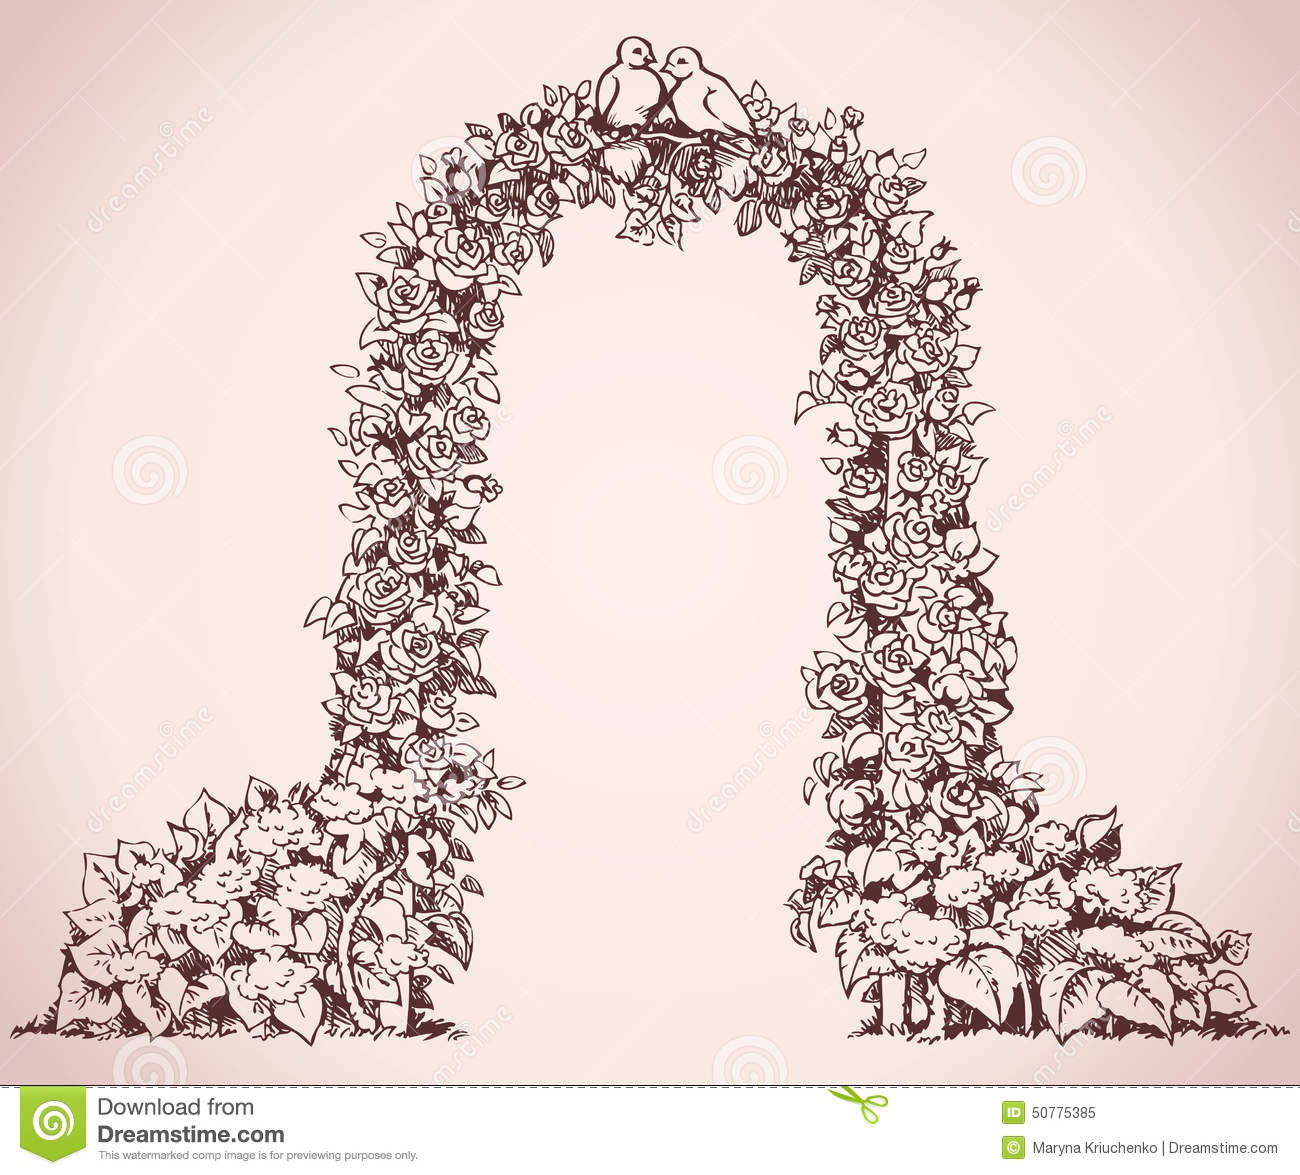 Arch Climbers clipart #6, Download drawings